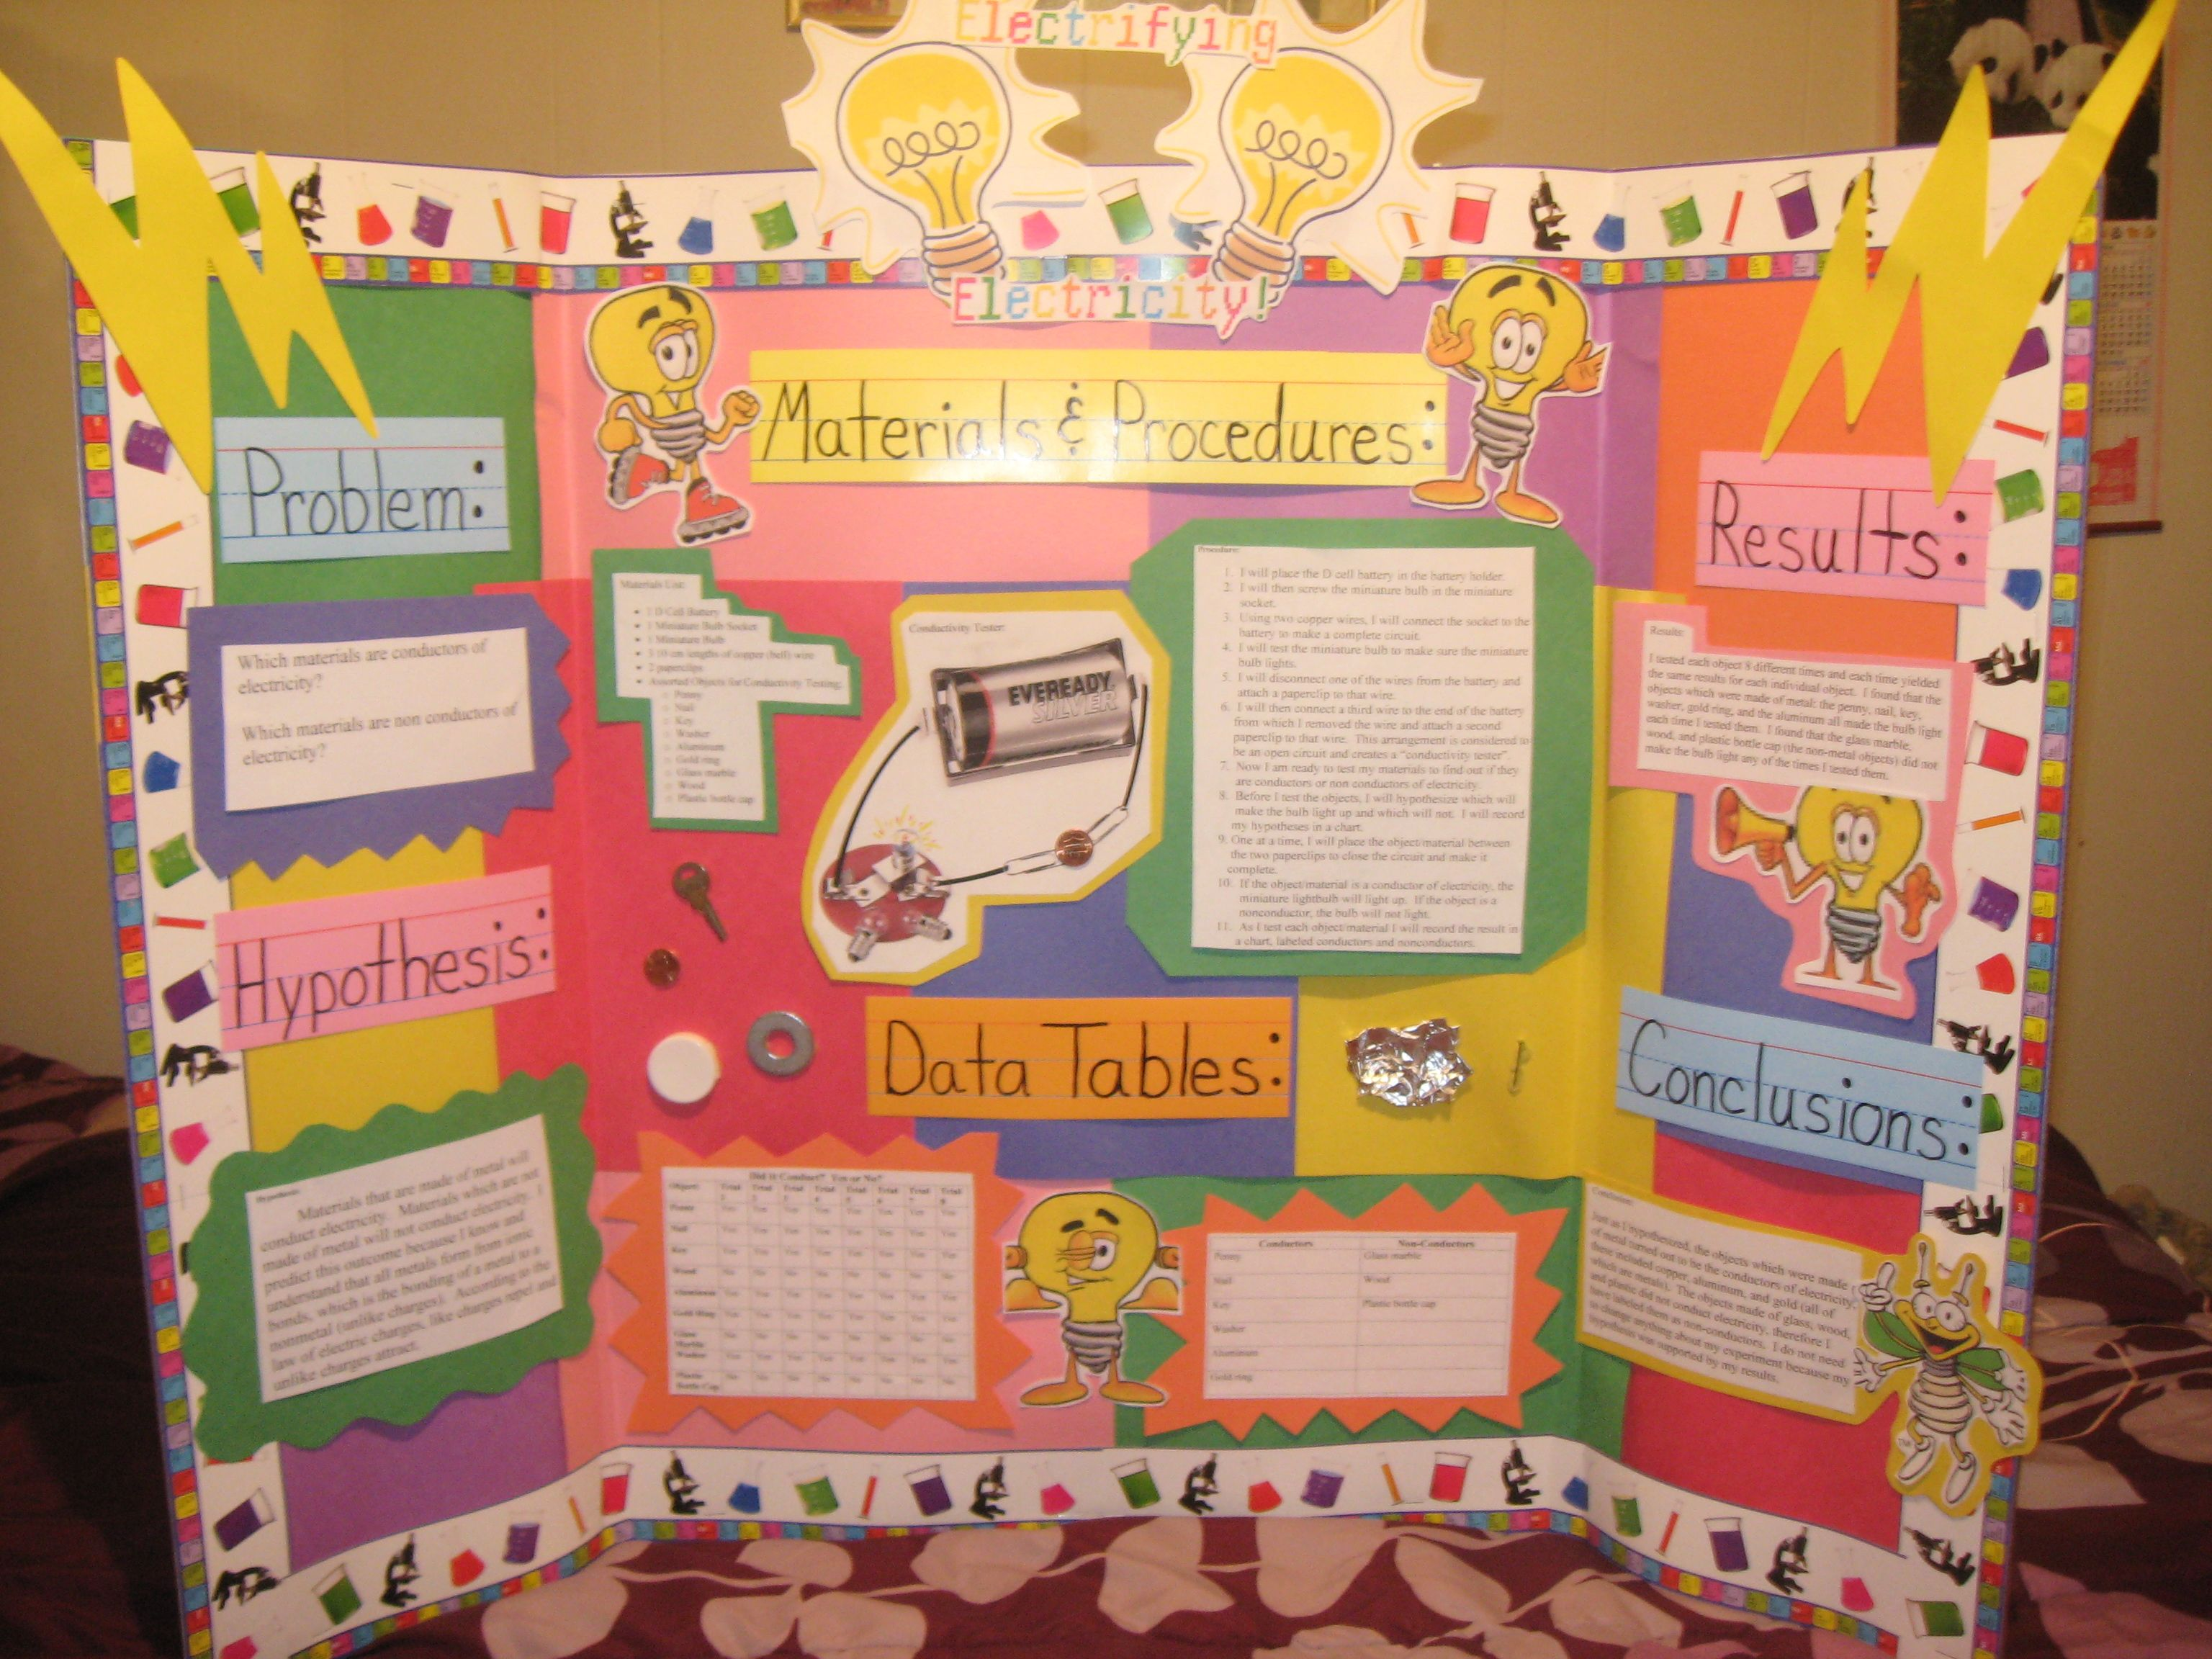 87bb12ad9c7c86de595bbe09d43cf6ad  Th Grade Science Projects For Electricity on 4th grade math, 4th grade static electricity worksheet, activities for 4th grade electricity, 4th grade energy, science fair boards about electricity, home projects electricity, research about static electricity, 4th grade scientific method projects, cool science projects electricity, science fair projects electricity, 4th grade class rules,